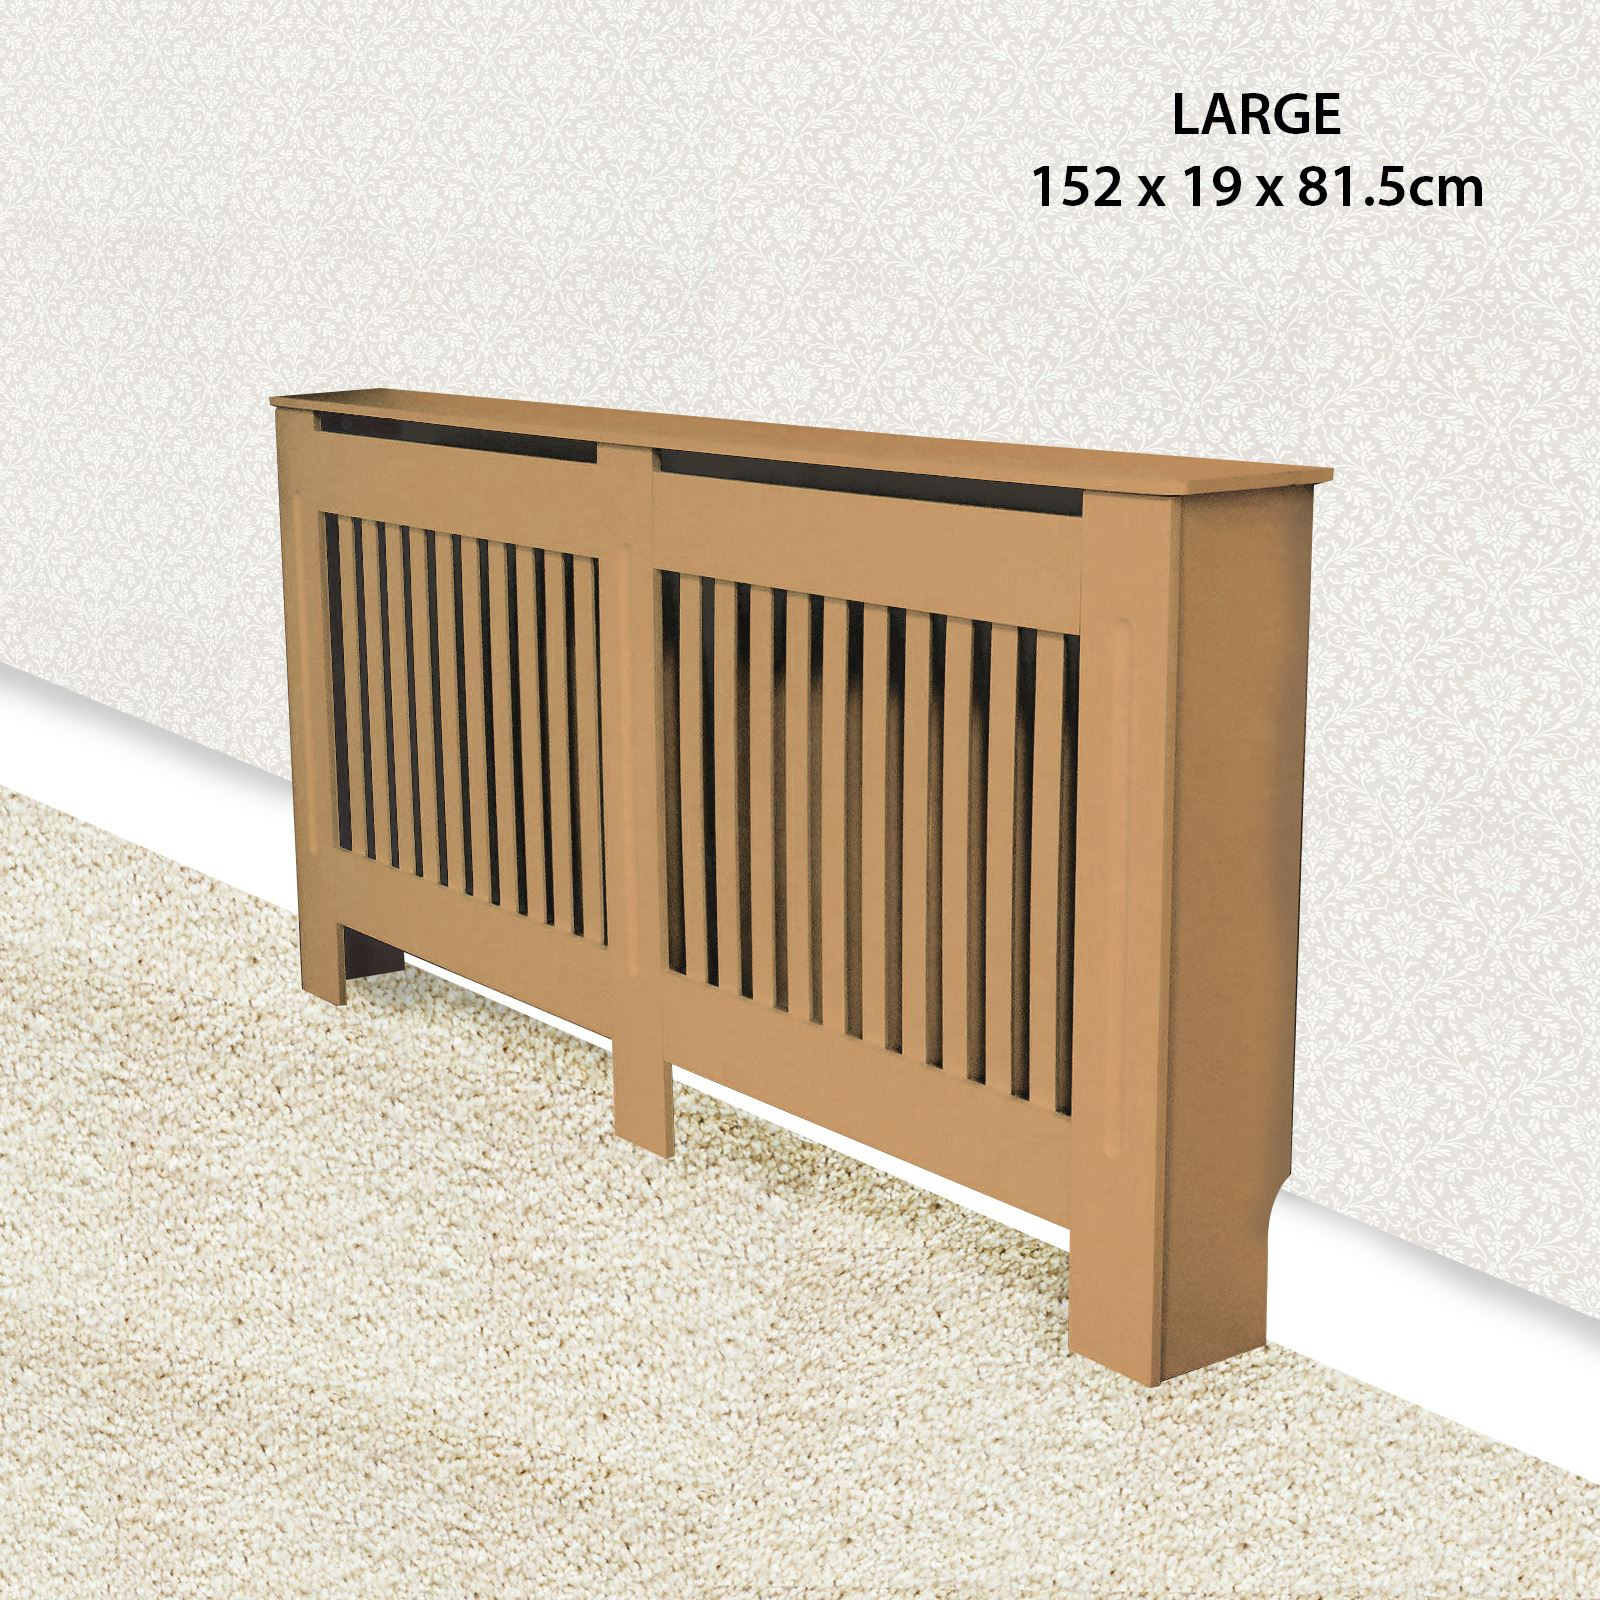 Traditional-Radiator-Cover-Cabinet-Vertical-Slatted-MDF-Wood-Small-Large-Unit thumbnail 10